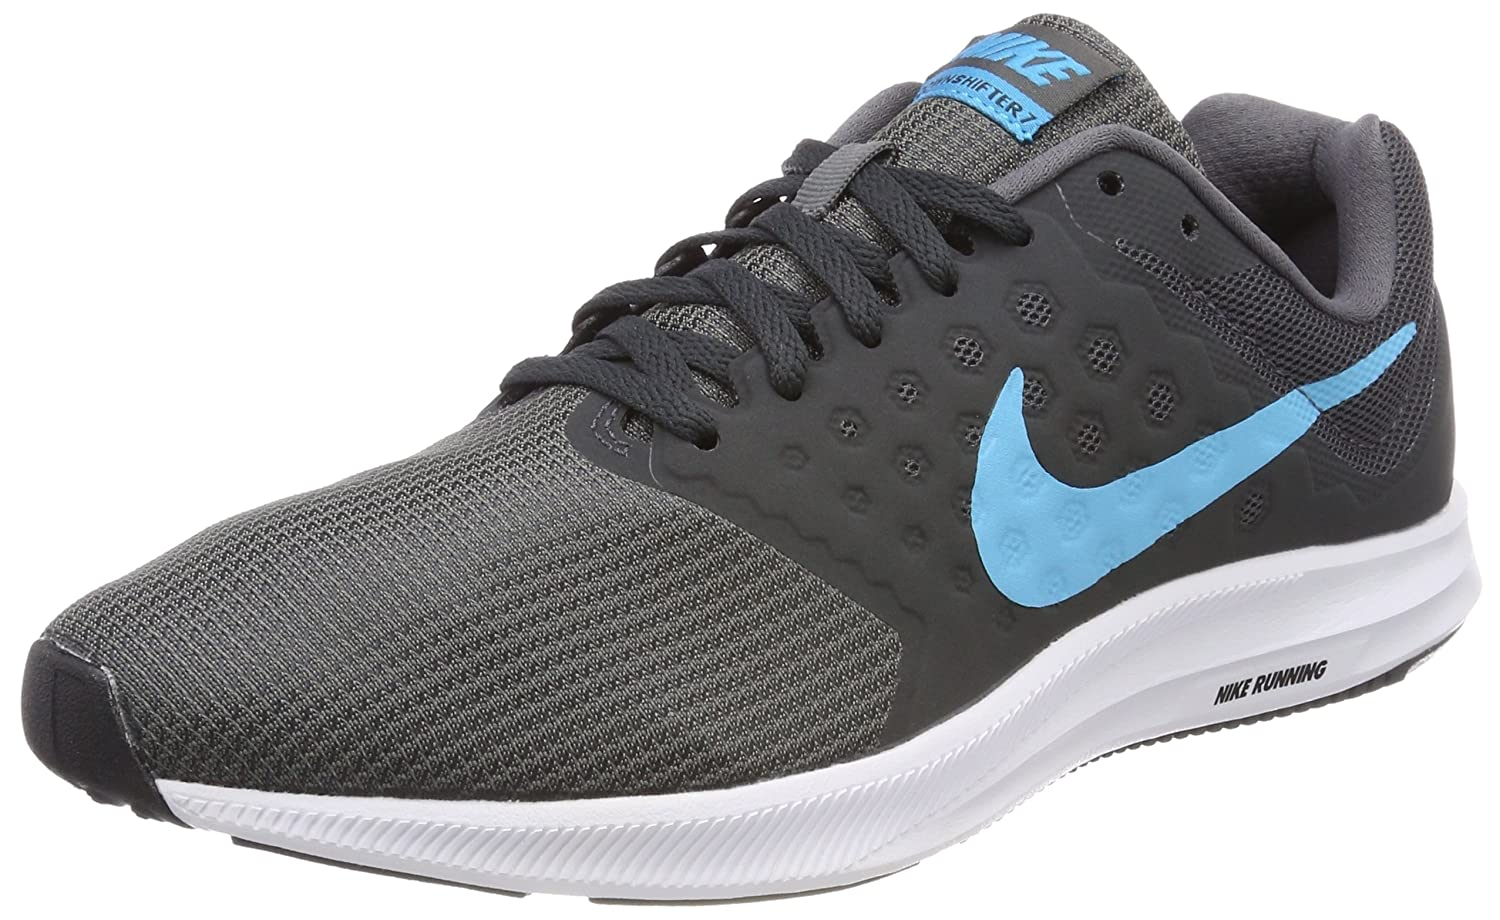 6dfb2ff96a6 Nike Men s Downshifter 7 Gry Blu-Anth-Blk Running Shoes-7 UK India (40 EU)  (852459-011)  Buy Online at Low Prices in India - Amazon.in